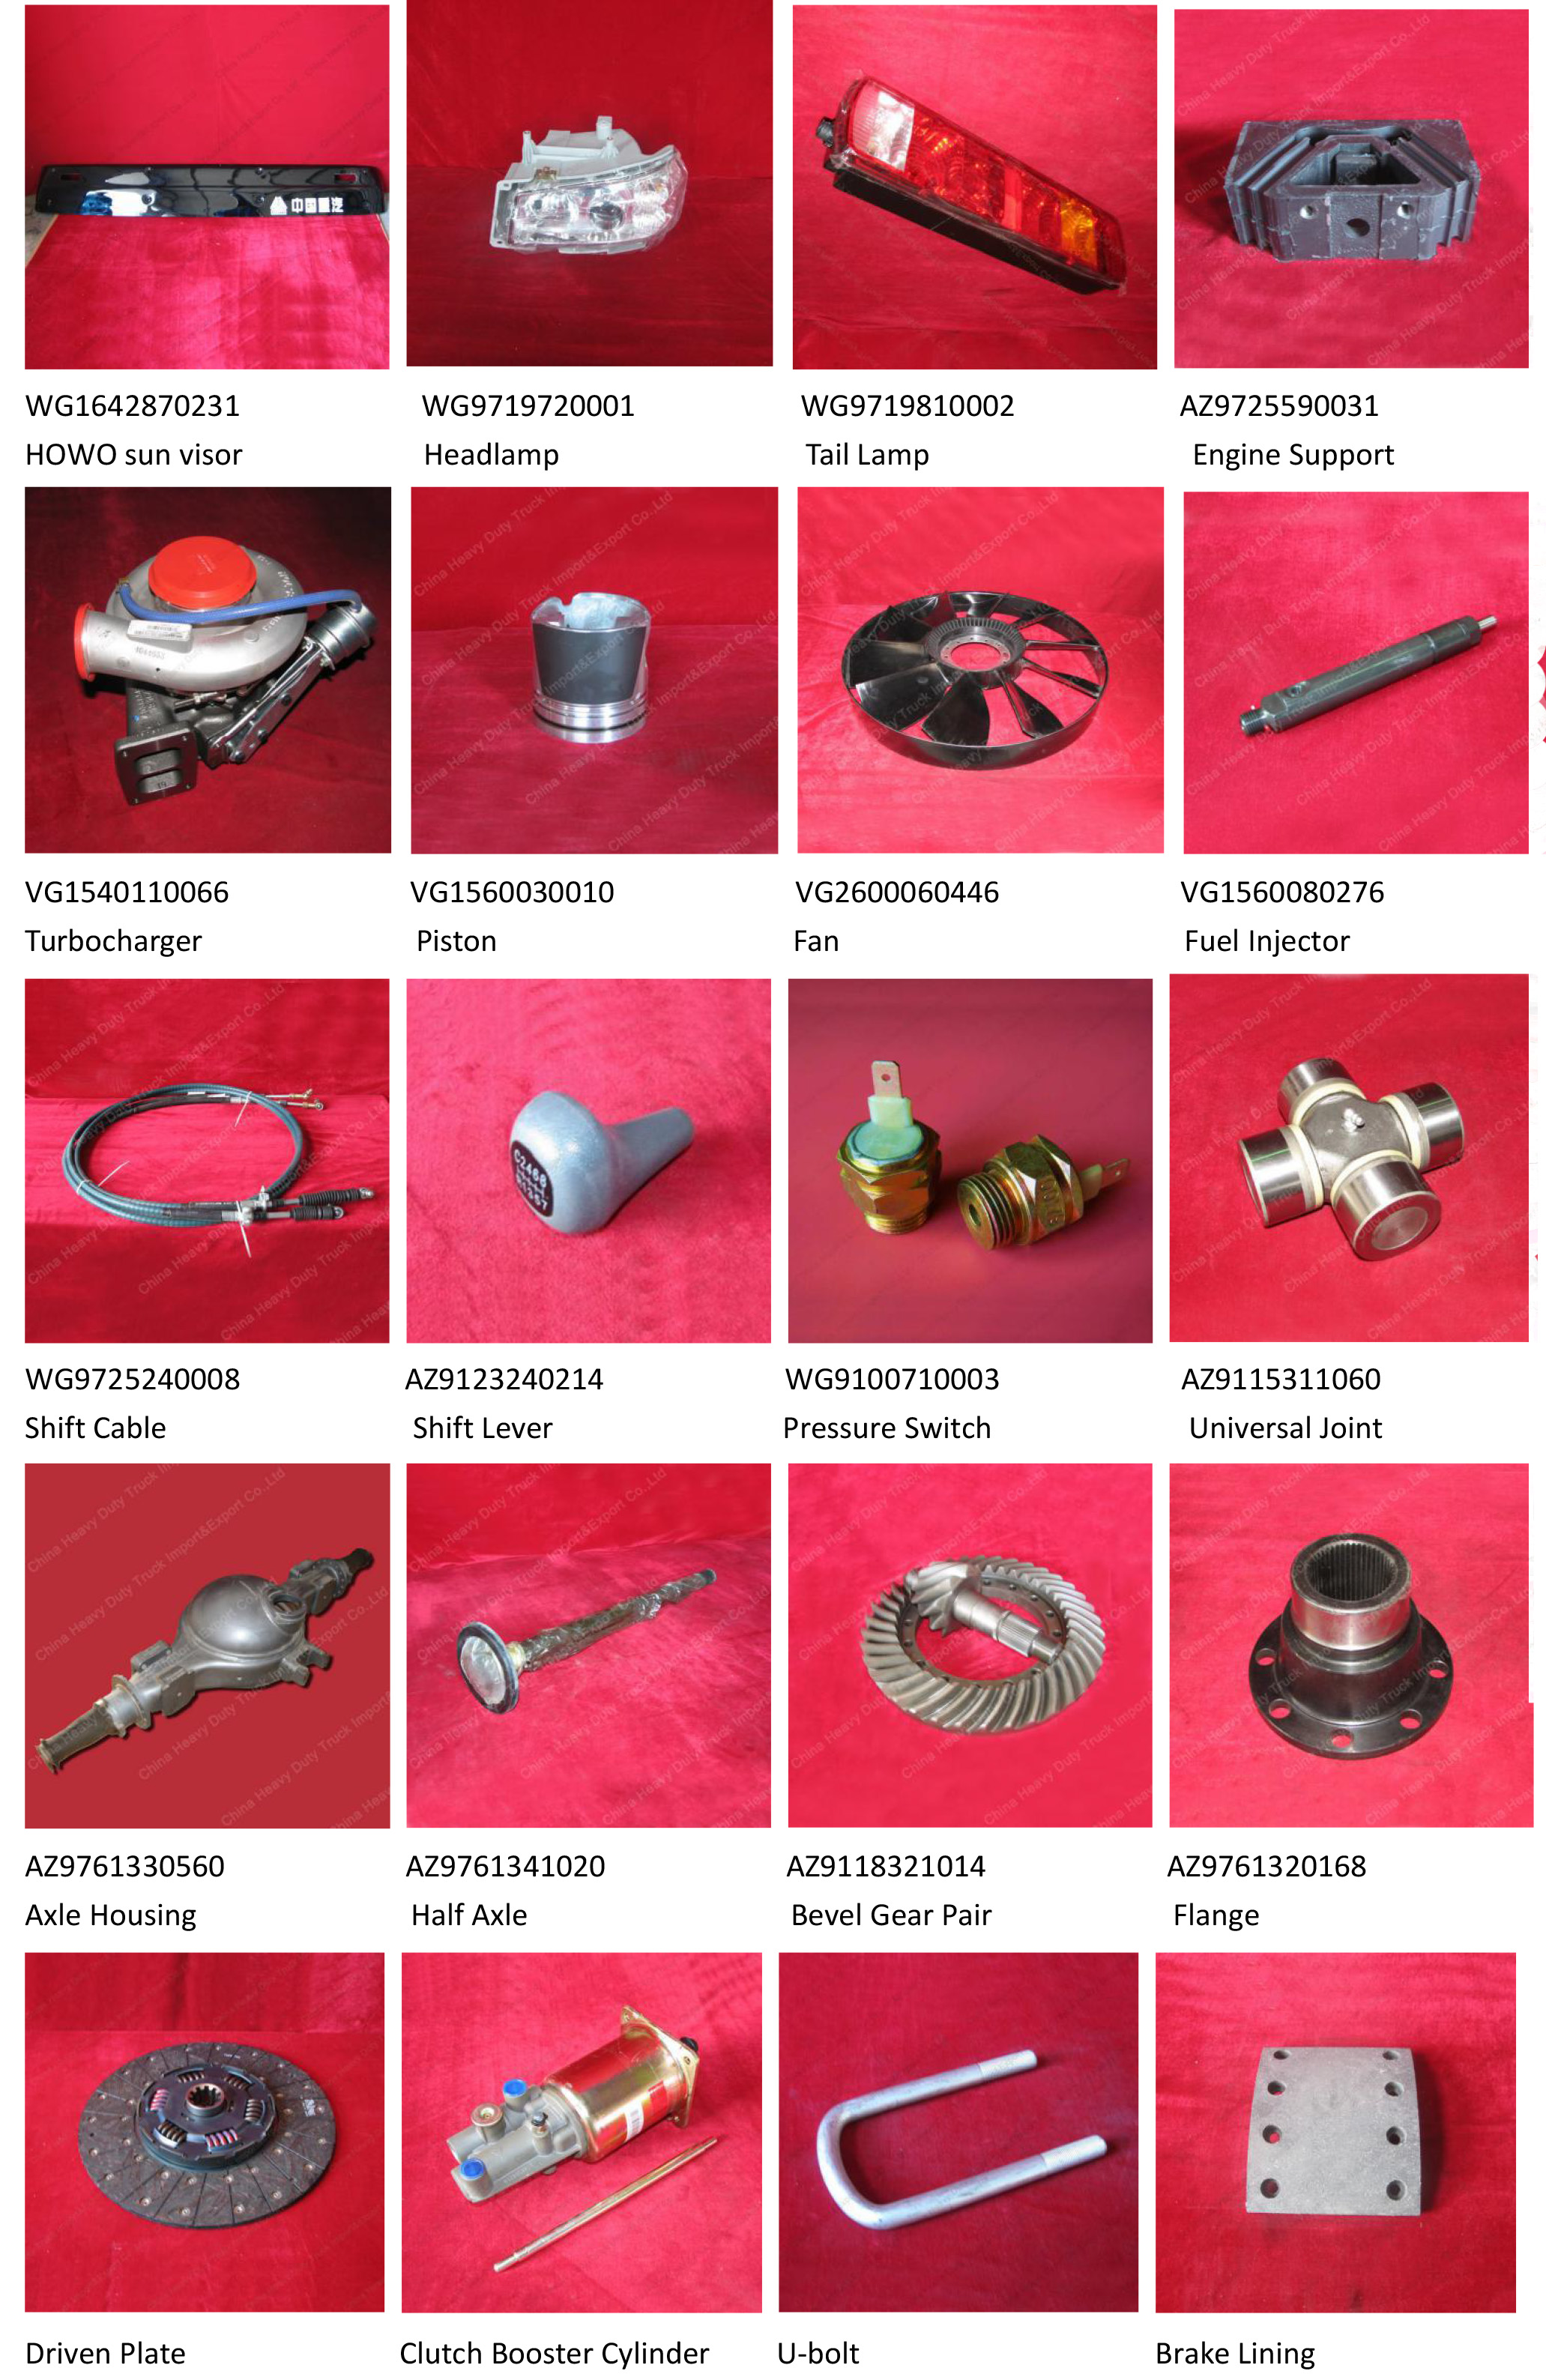 www.sinotrukimpex.org some truck parts photos.jpg